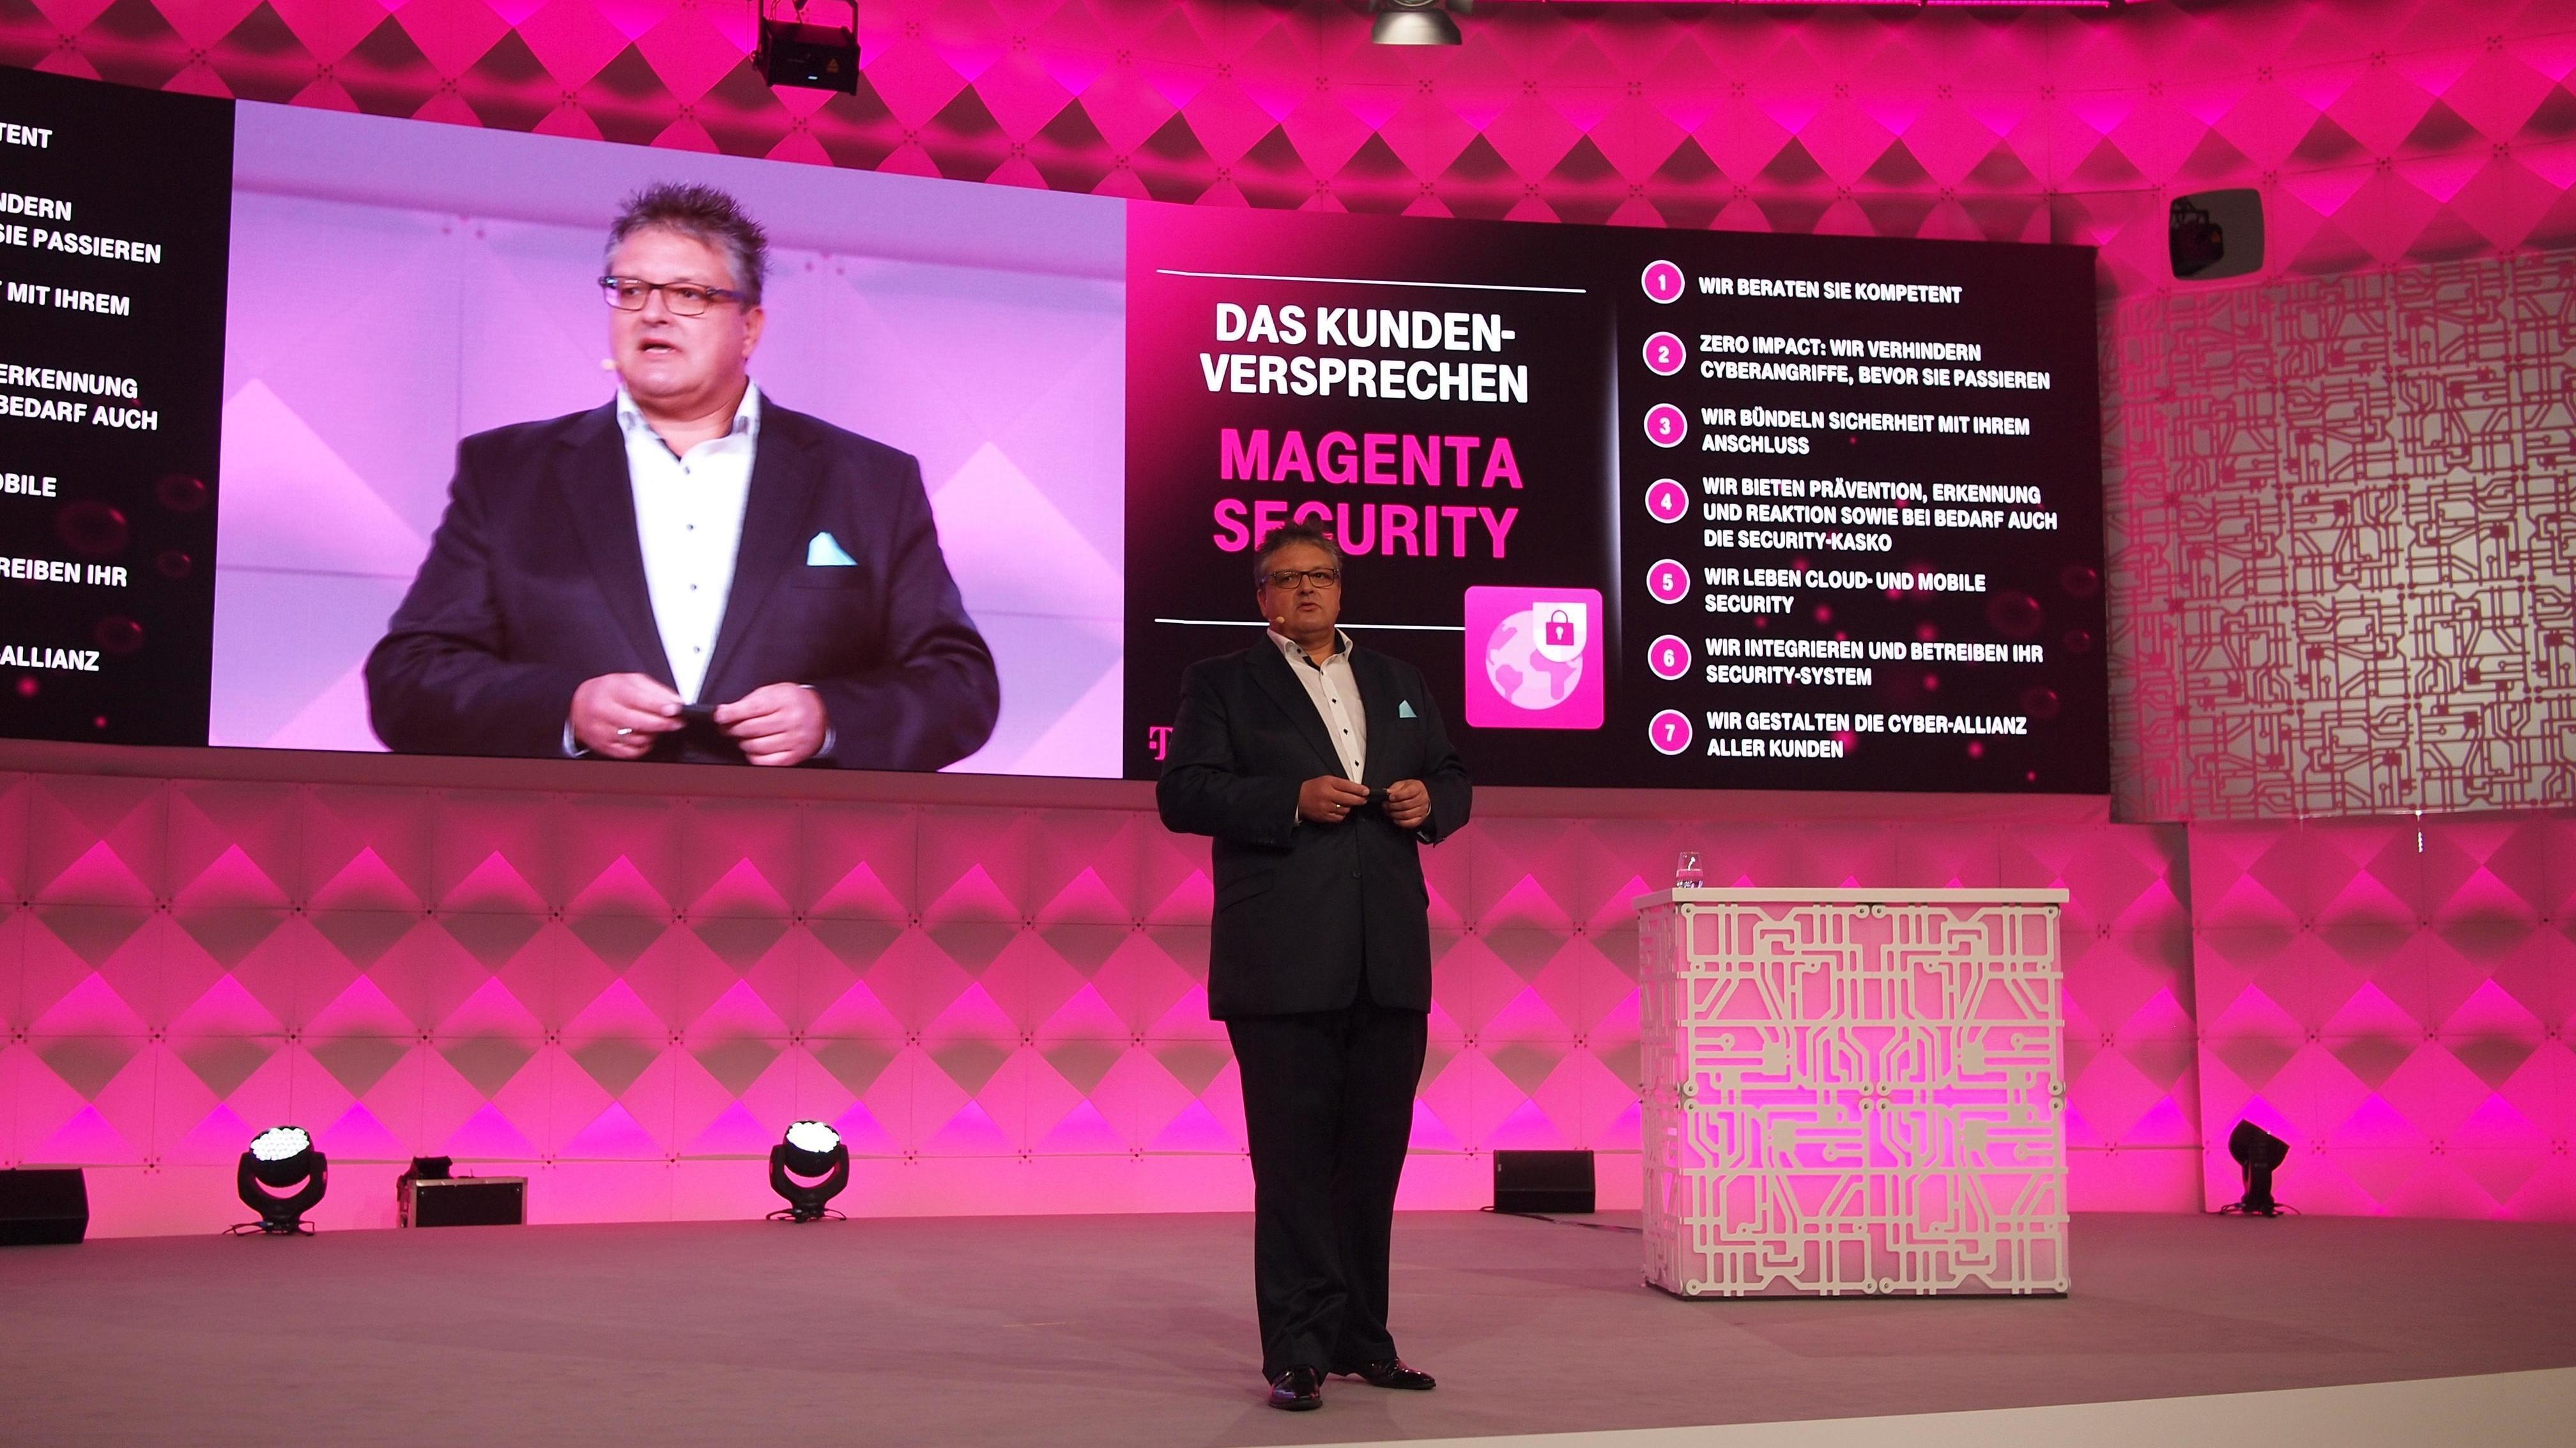 magenta security kongress deutsche telekom pr sentiert. Black Bedroom Furniture Sets. Home Design Ideas